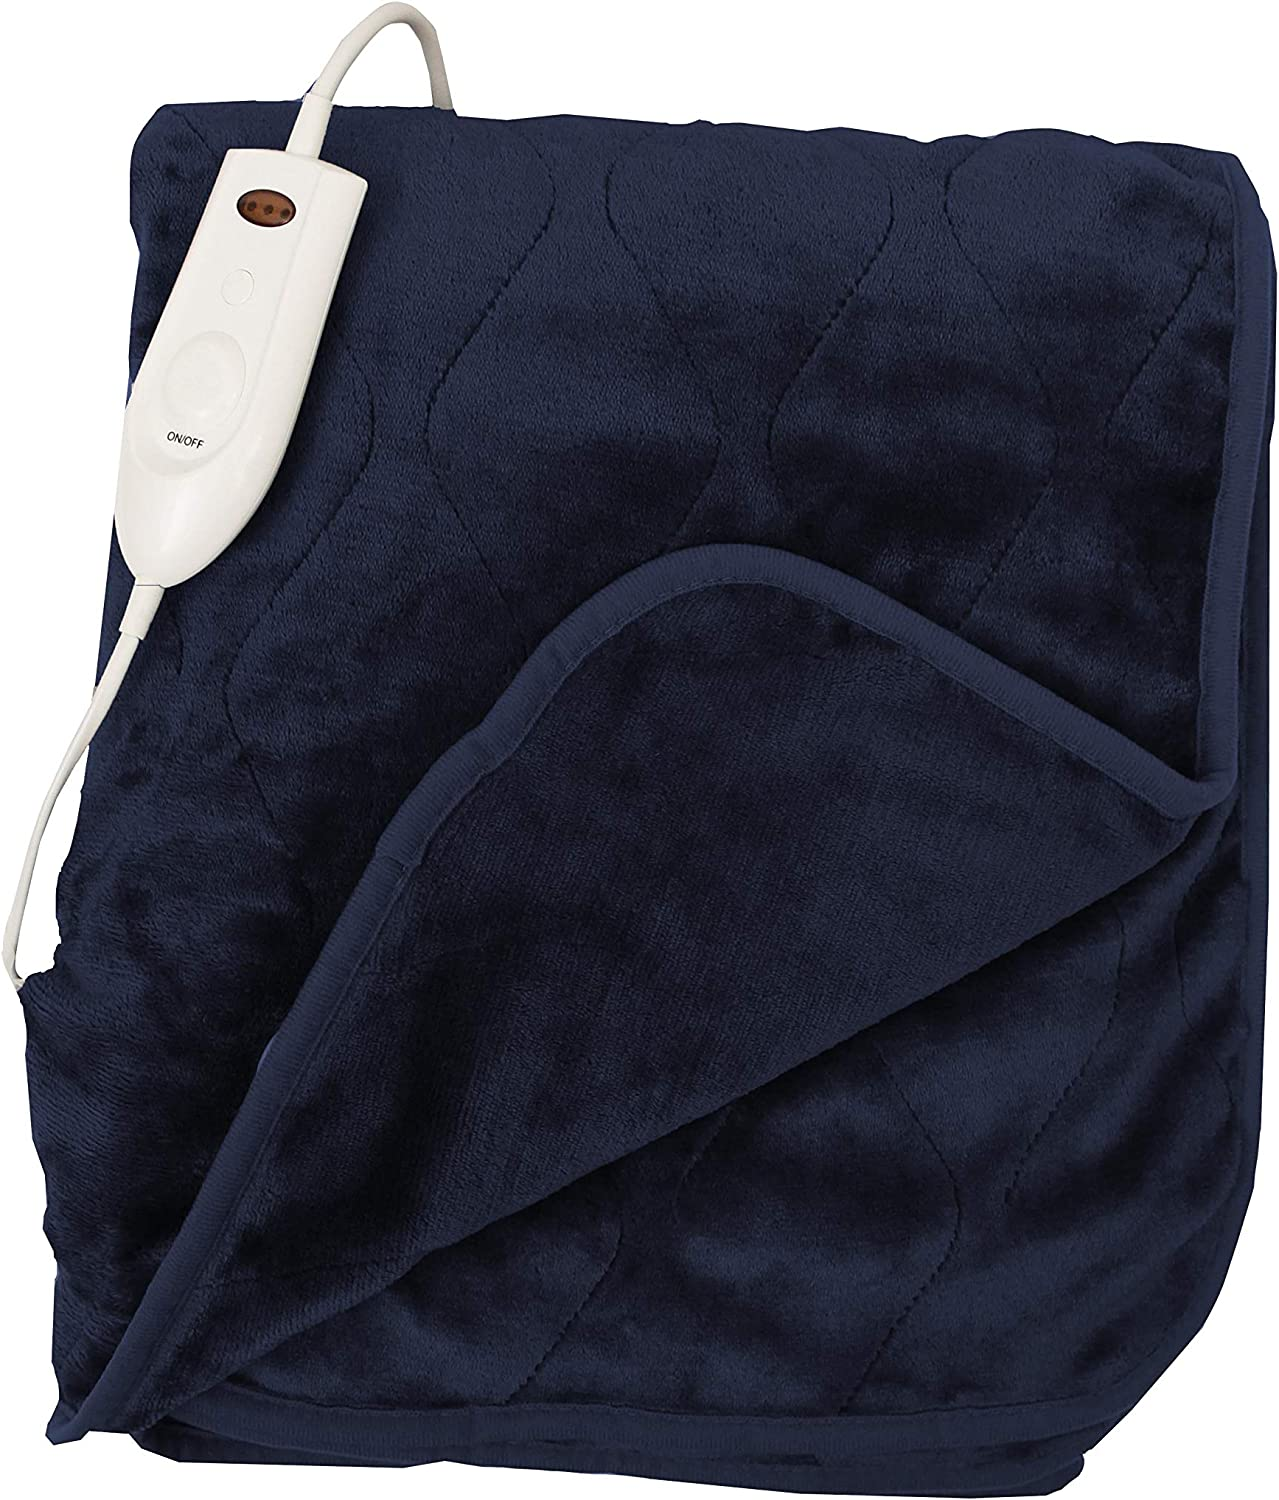 "Quilted Secure Comfort Technology Electronic Heated Throw Blanket 51"" x 63"" 3 Heat Settings Auto Shut Off Fast Heating for Full Body Warming (Navy)"